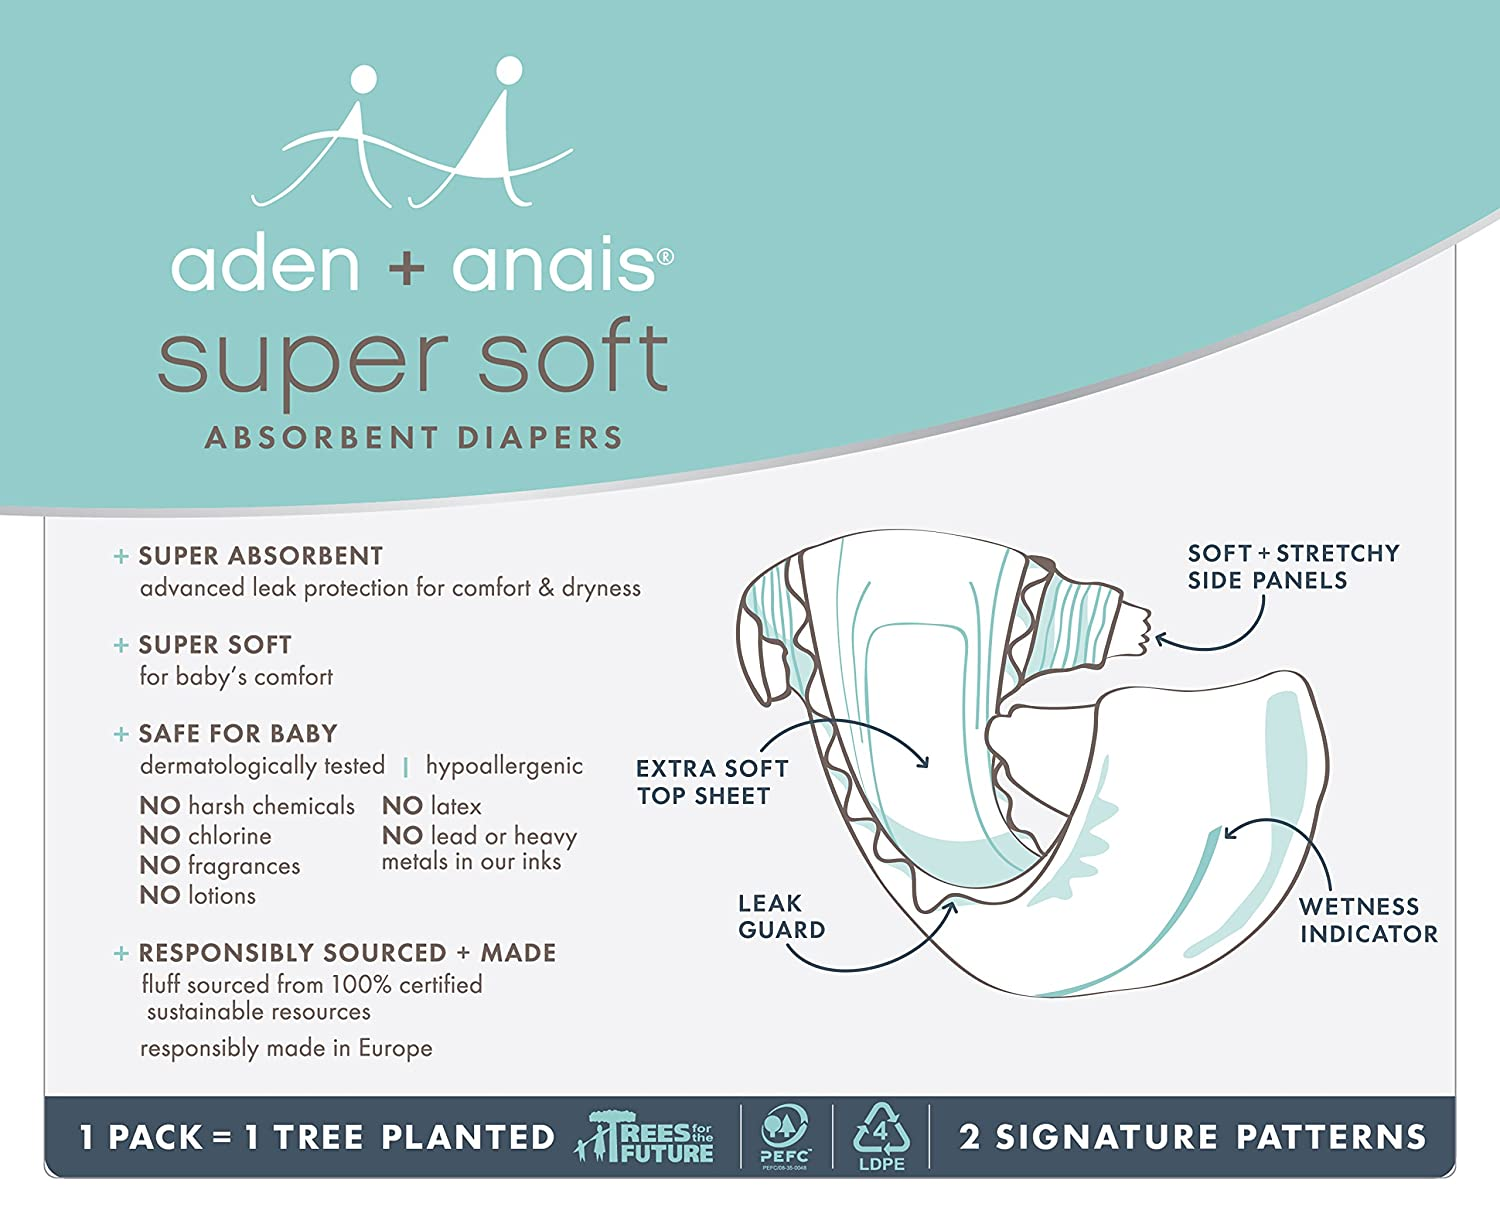 Amazon.com : aden + anais Disposable Diapers, Hypoallergenic, Chemical-Free, Sensitive Skin Safe, Super Absorbent Leak Protection, Ultra Soft, ...